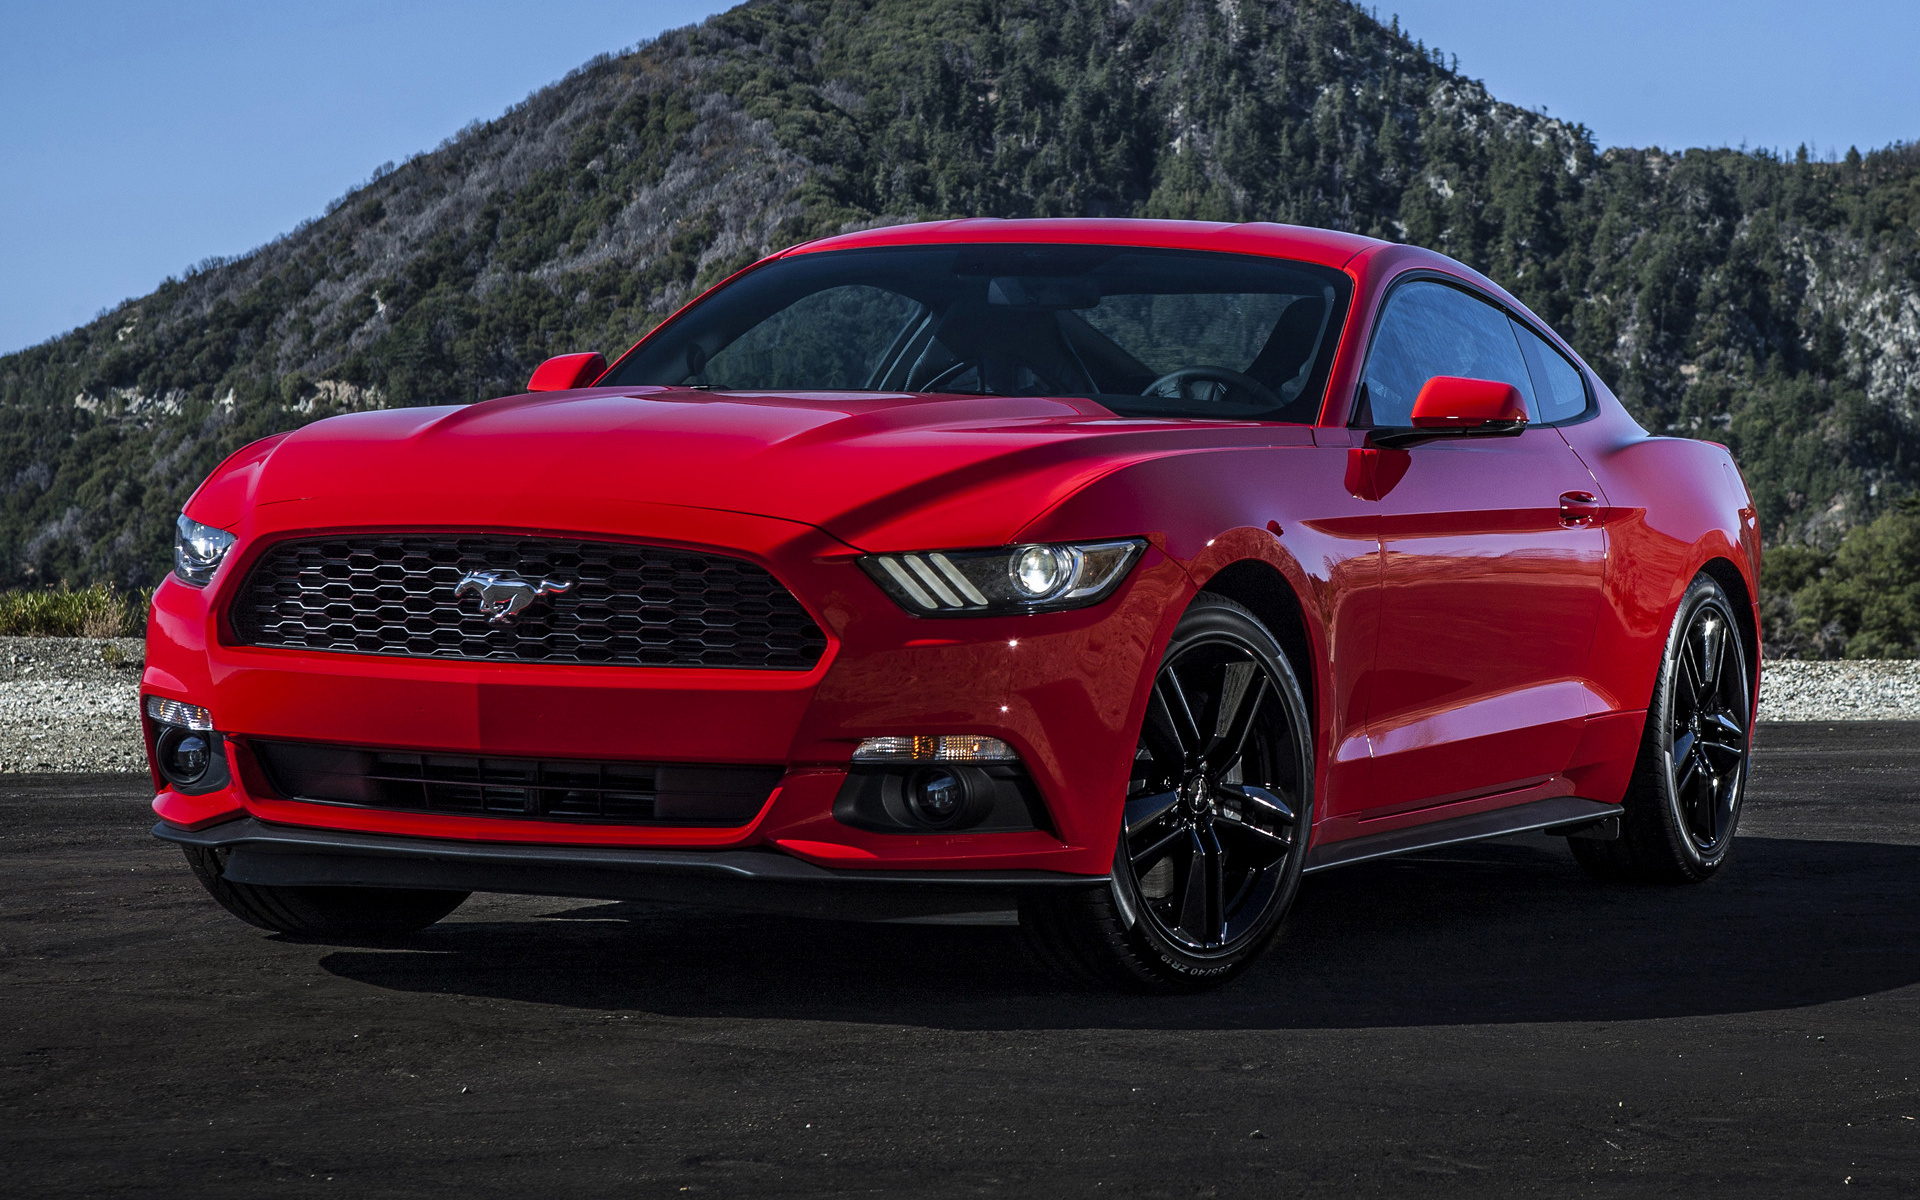 91 Mustang Gt >> 2015 Ford Mustang EcoBoost - Wallpapers and HD Images ...